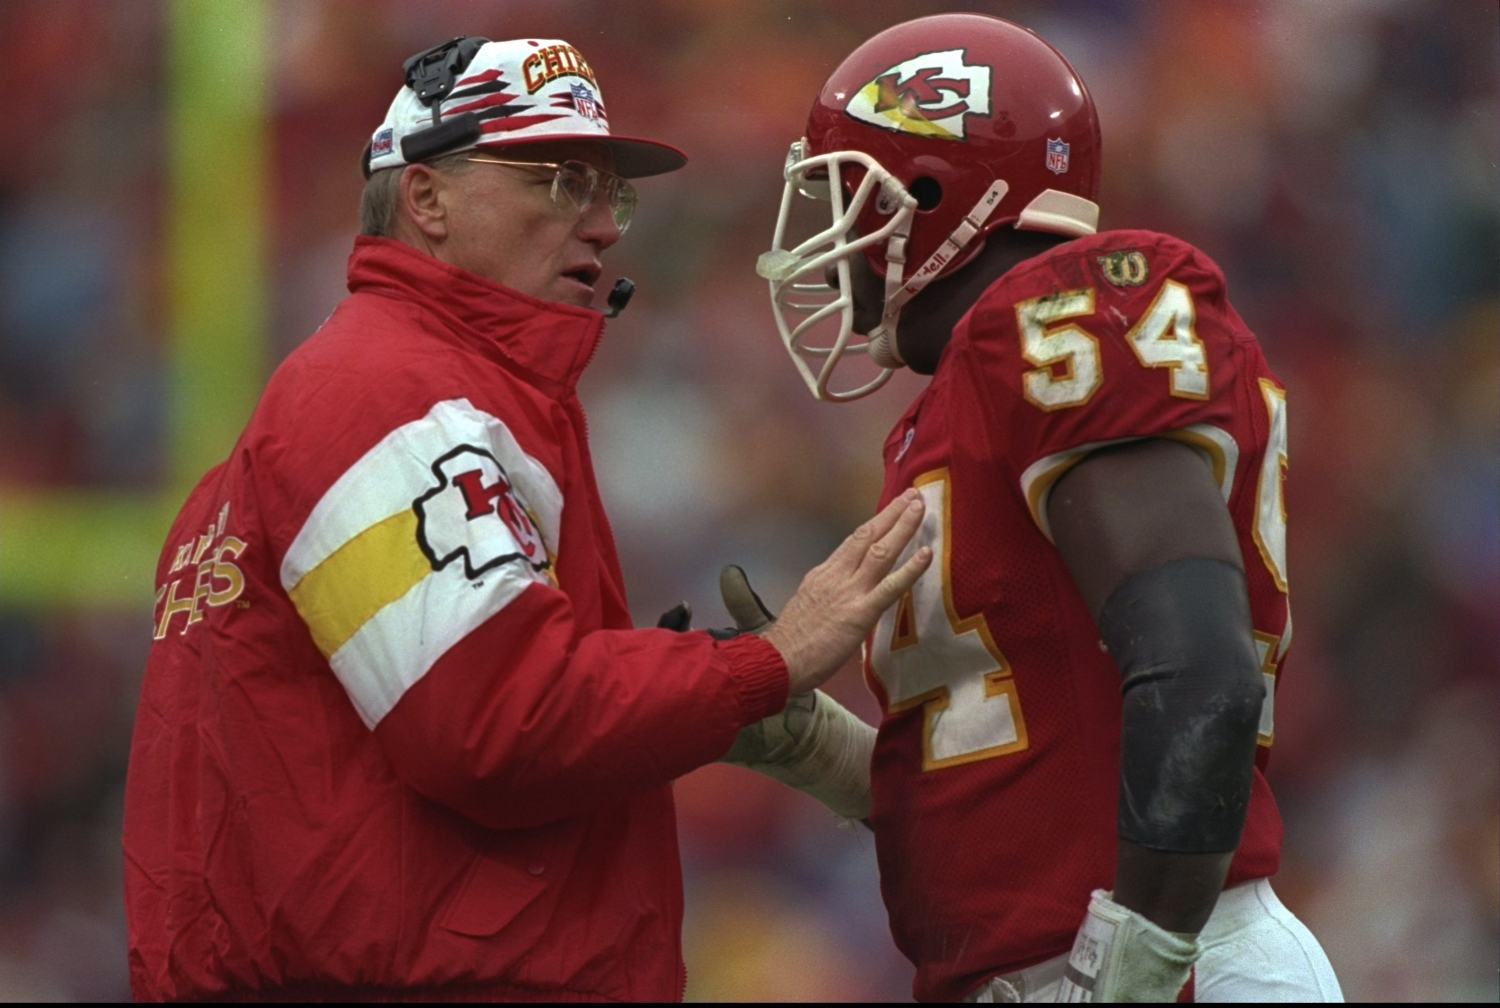 Head coach Marty Schottenheimer of the Kansas City Chiefs talks with his linebacker Tracy Simien during a game against the Green Bay Packers.